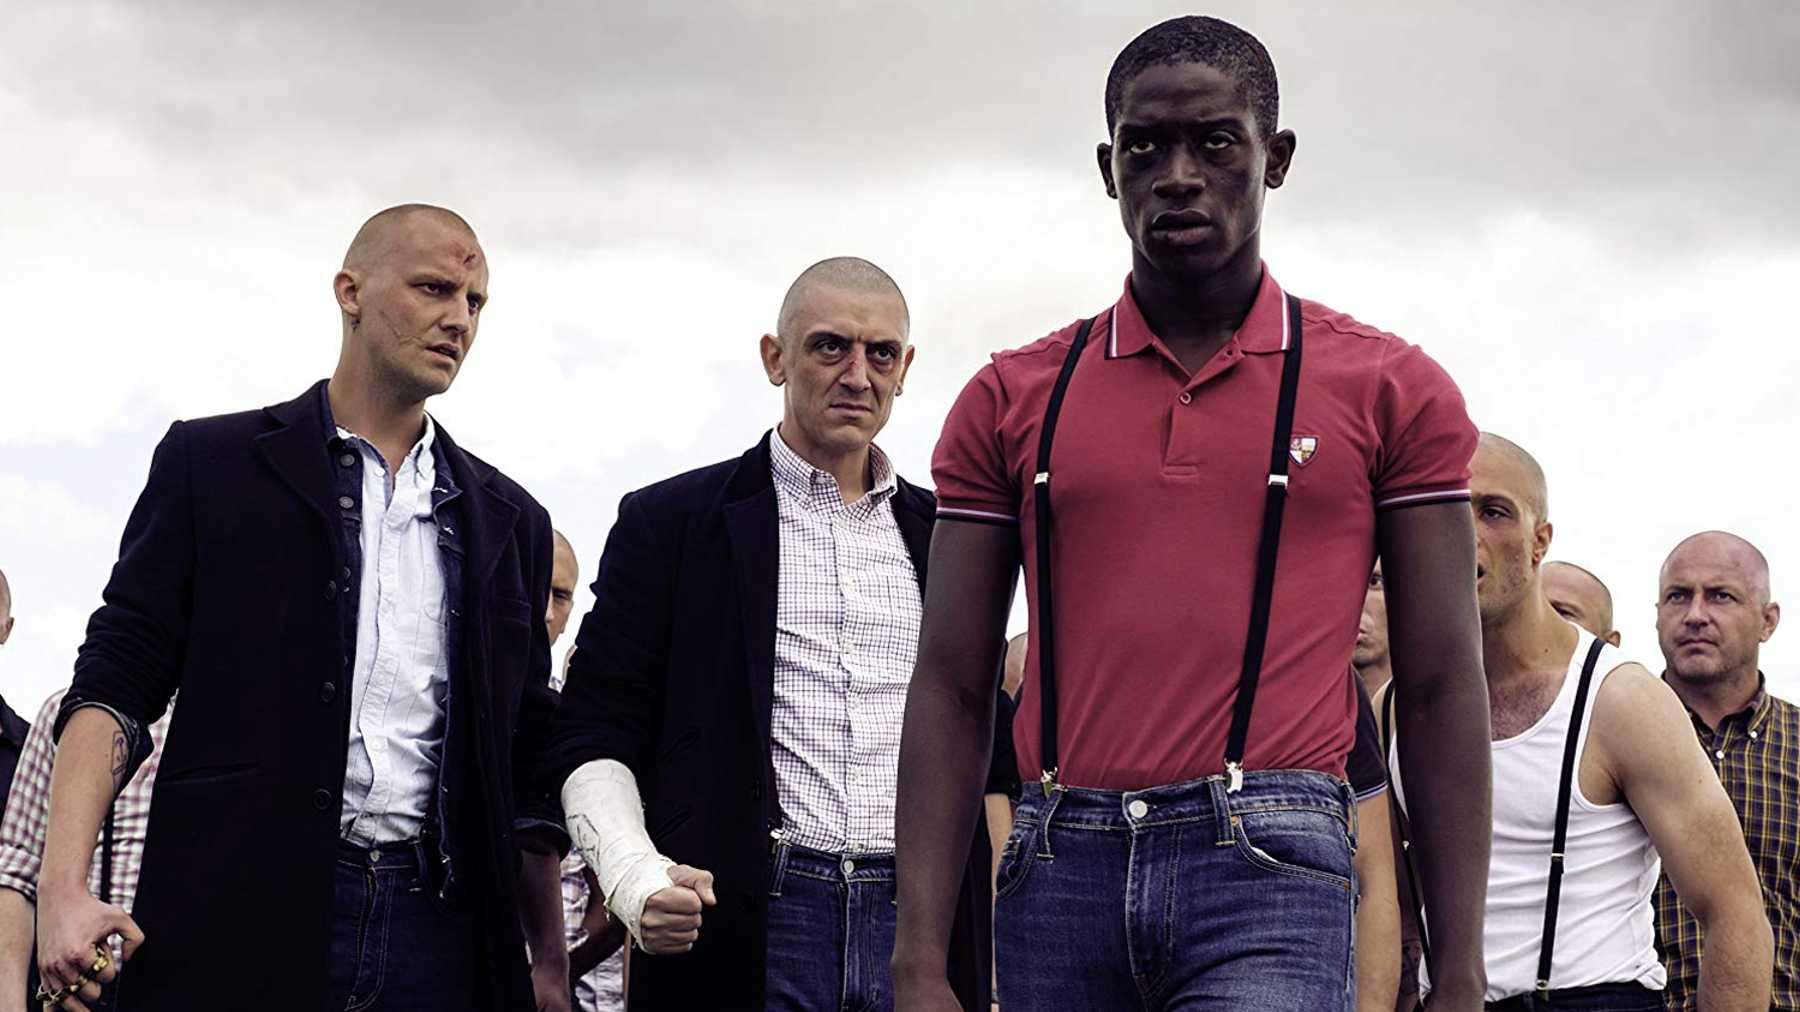 Farming is the true story of a Nigerian skinhead in 70s Essex